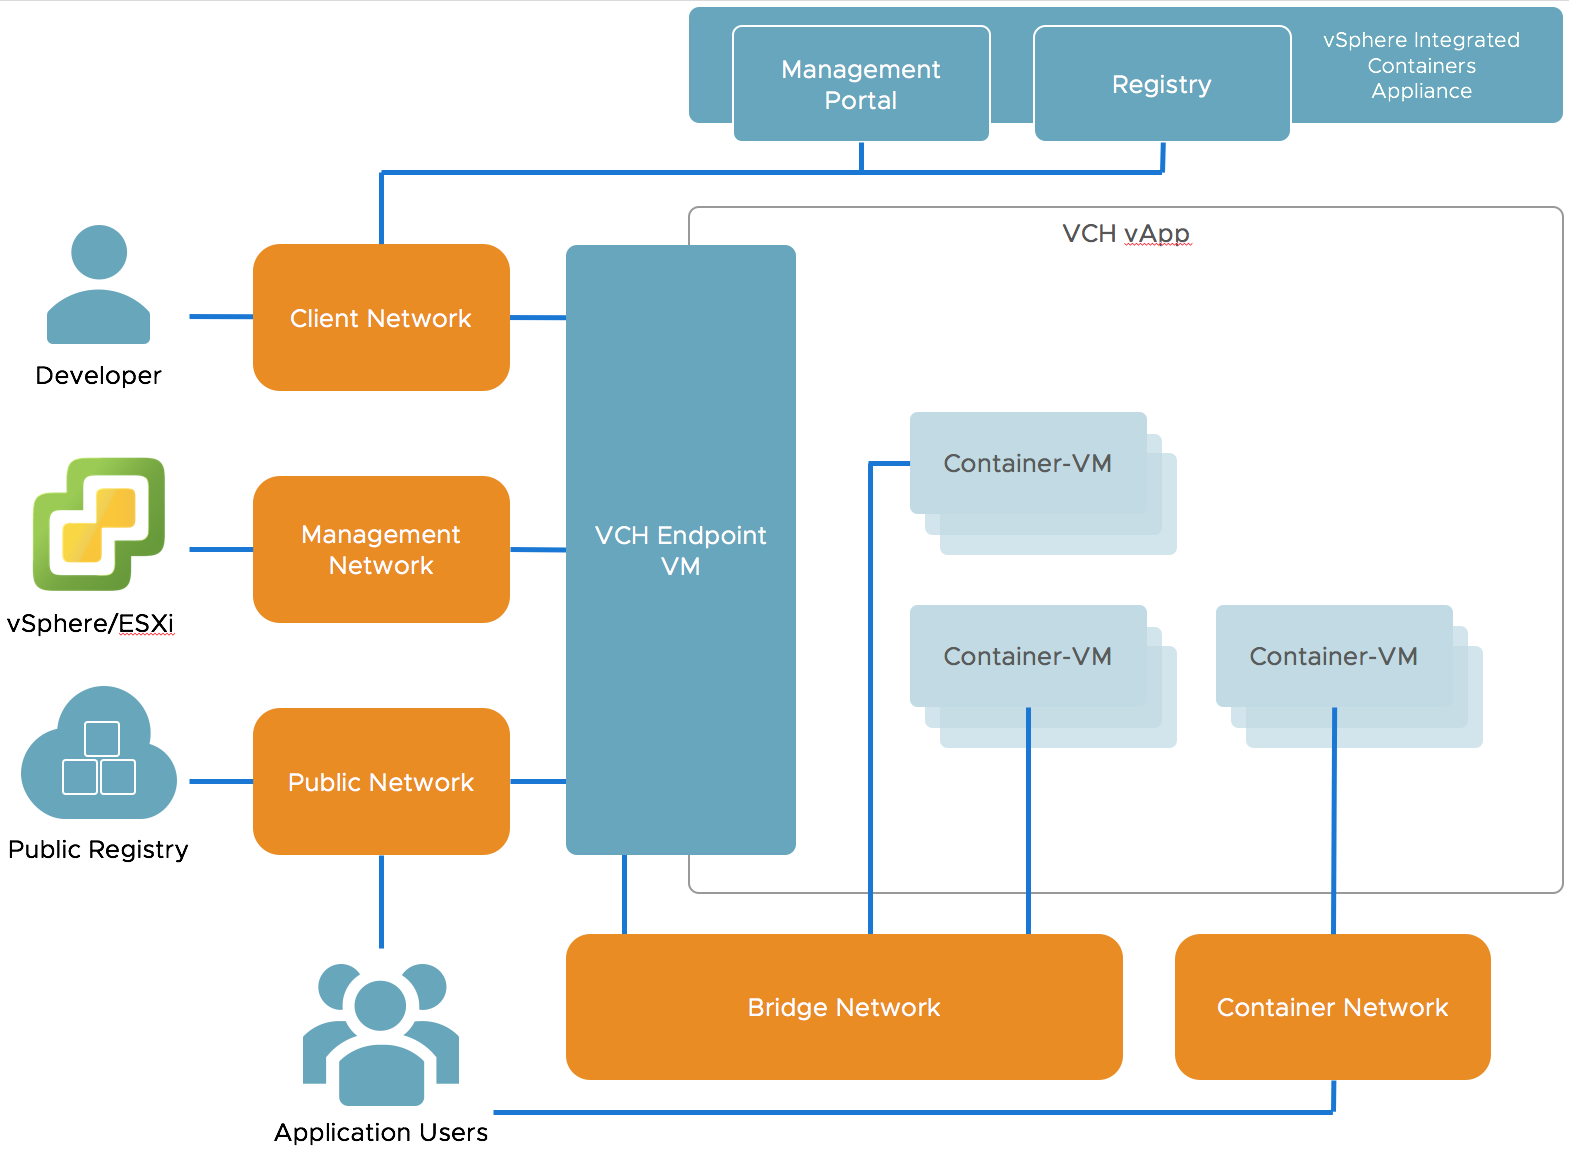 VCH Networking · VMware vSphere Integrated Containers 1.2 Documentation